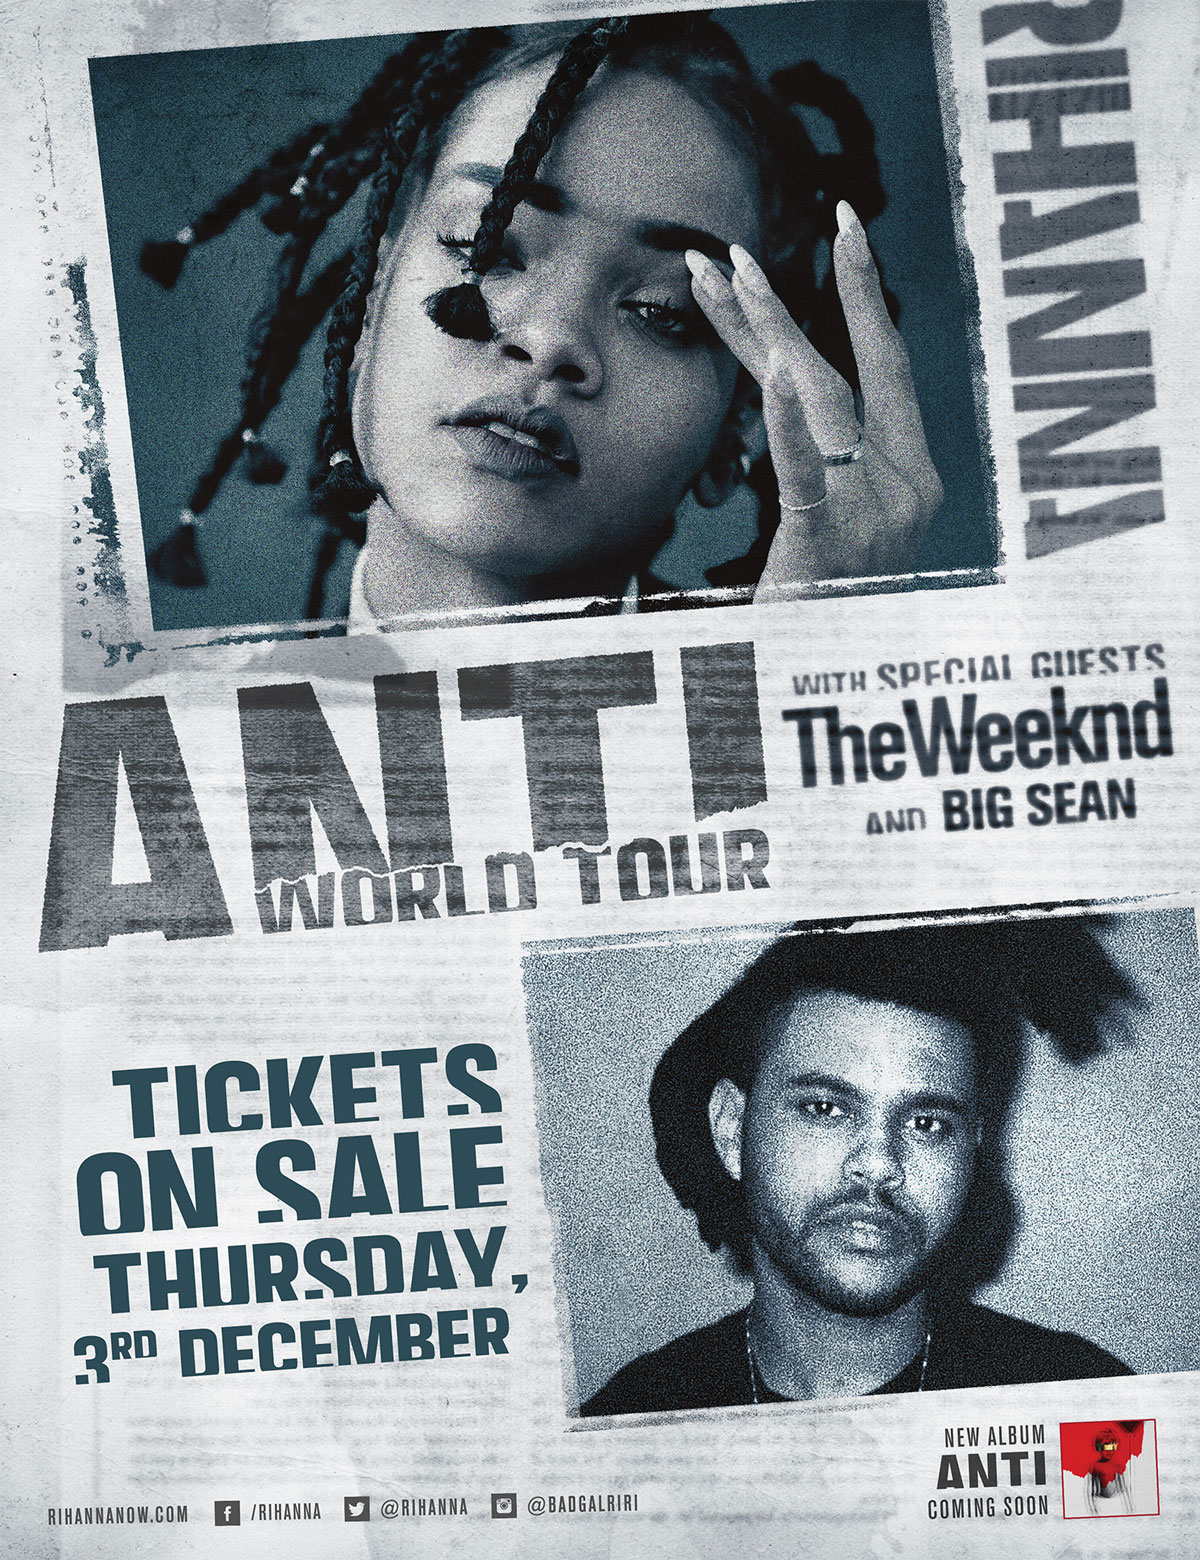 Anti - Tickets on sale Thursday 3rd December